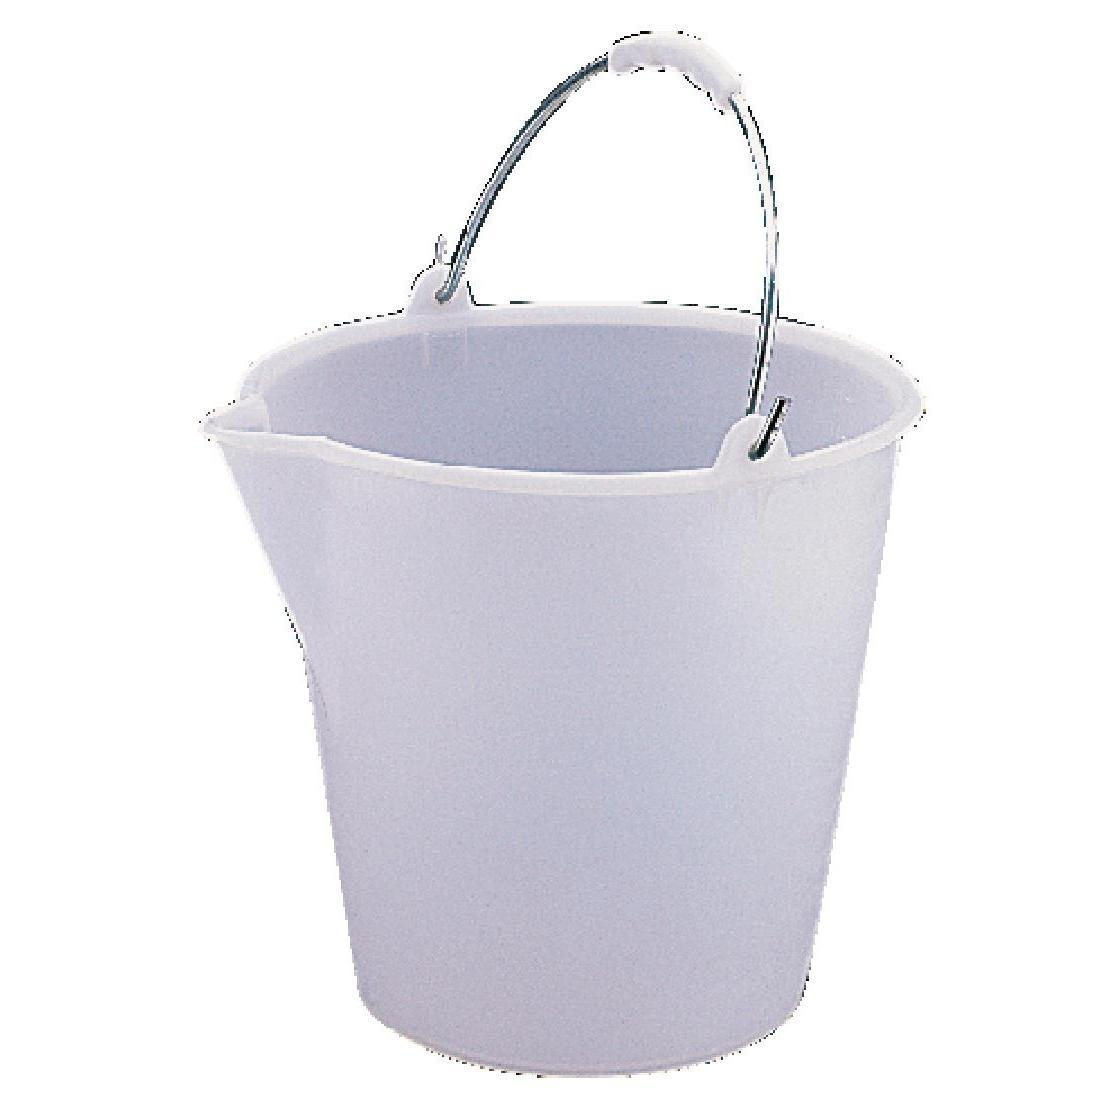 Jantex Heavy Duty Plastic Bucket White 12Ltr